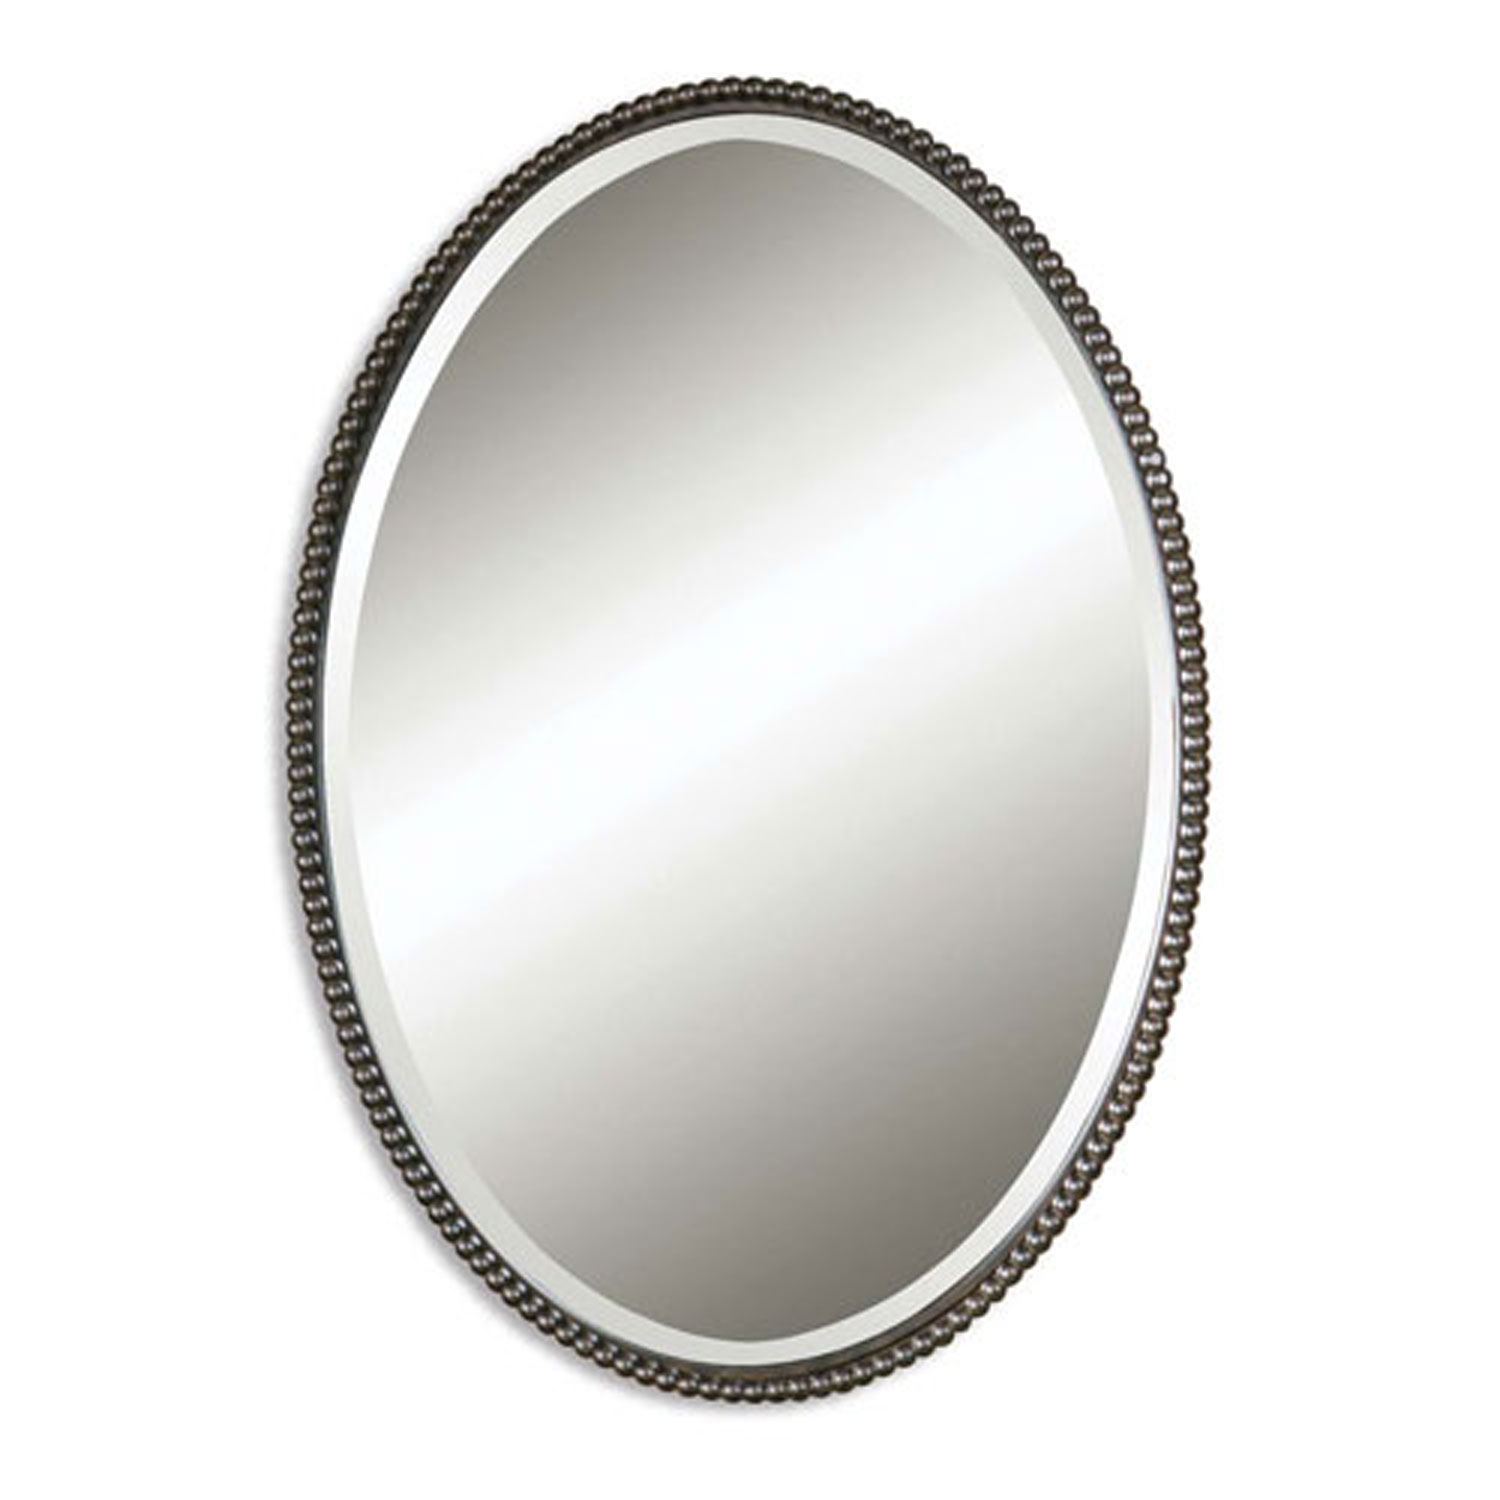 Oval Wall Mirrors 270 Kitchen Bathroom Frameless Vanity Options Within Oval Mirrors For Walls (Image 10 of 15)